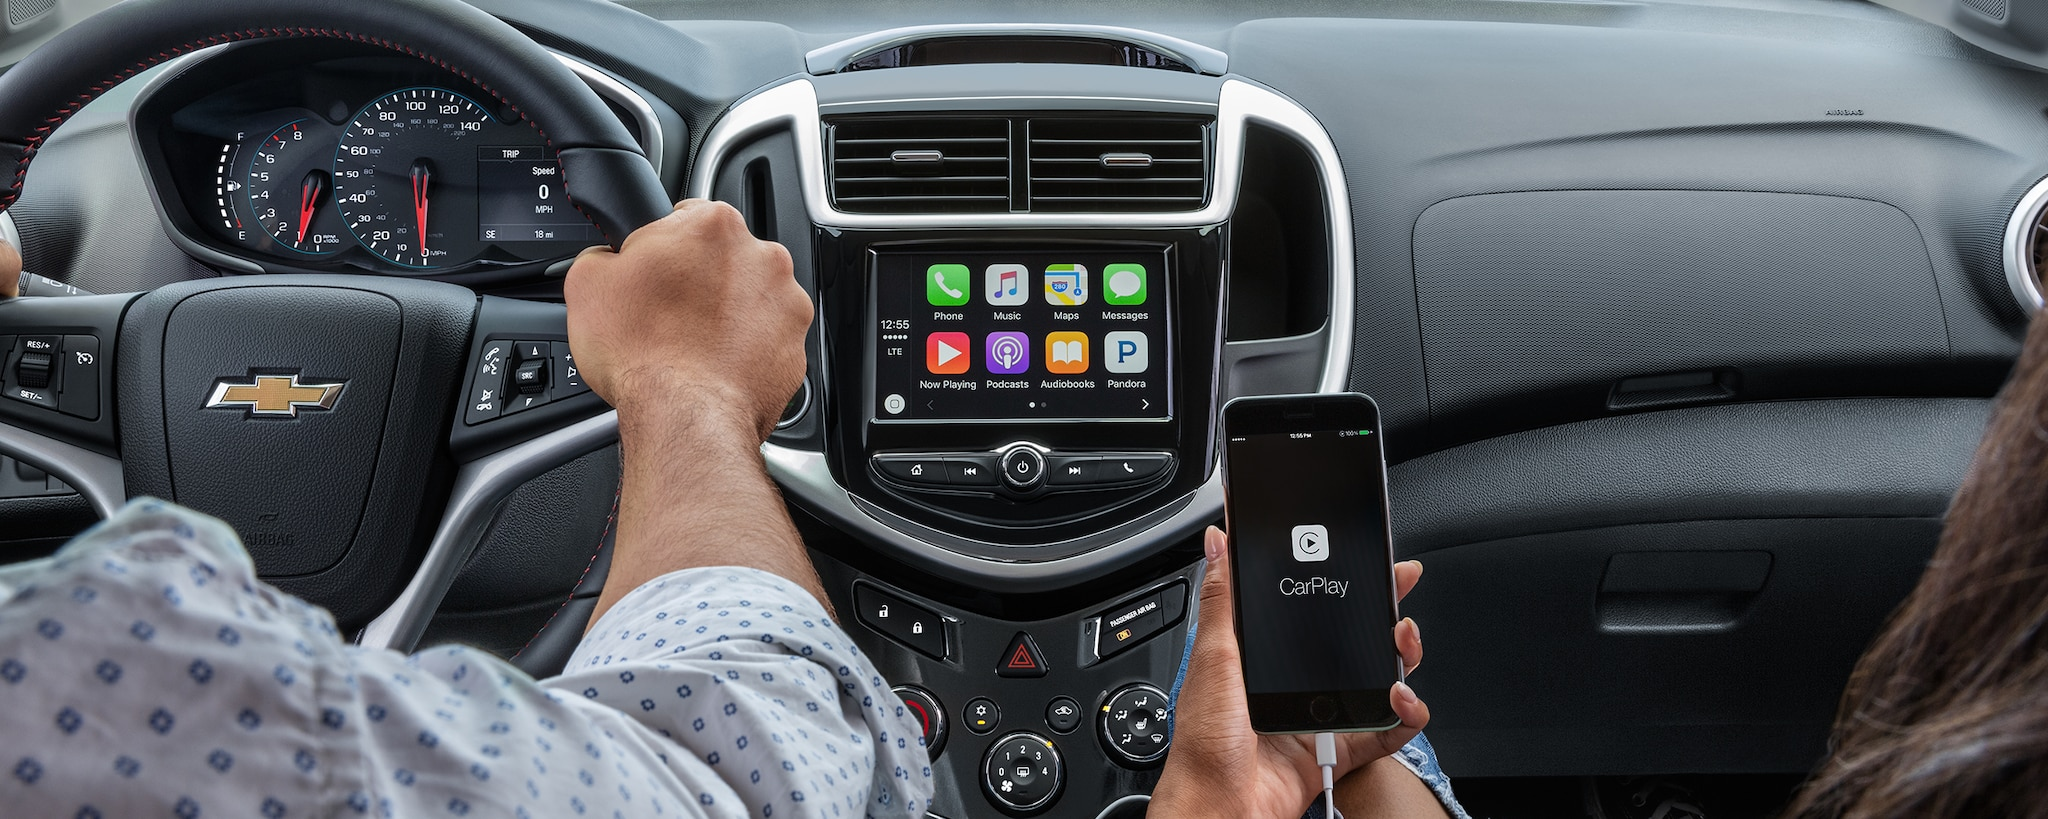 Apple CarPlay: compatibilidad